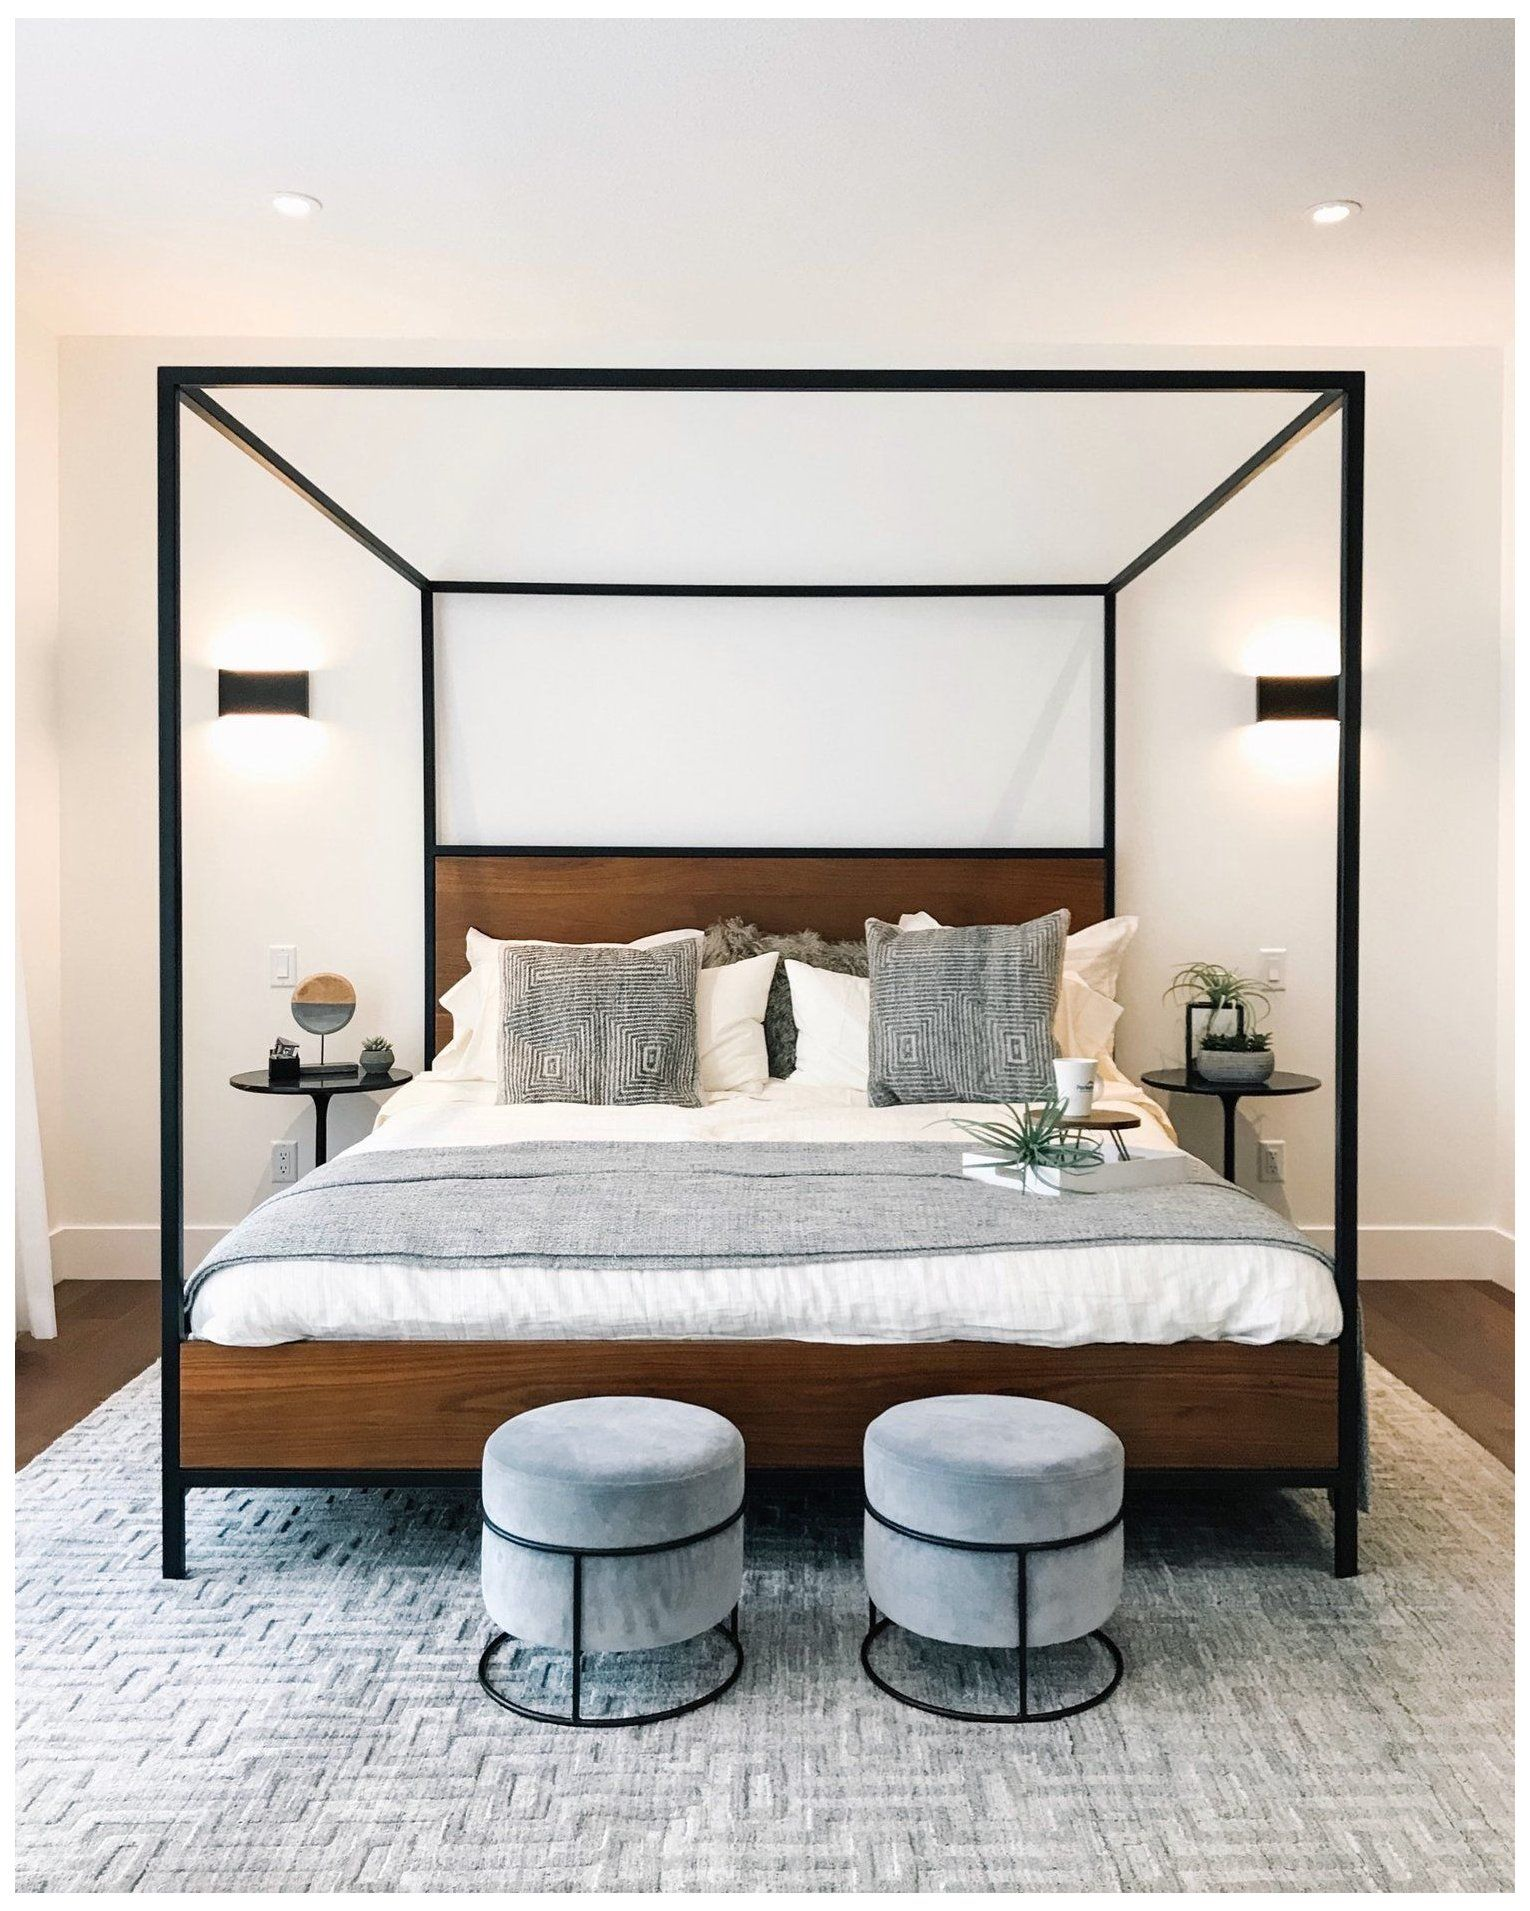 Dream Home Lottery A Designer S Dream Modern Canopy Bed I M Very Excited For Today S Post Because This Year I Ve In 2020 Home Bedroom Home Decor Bedroom Interior